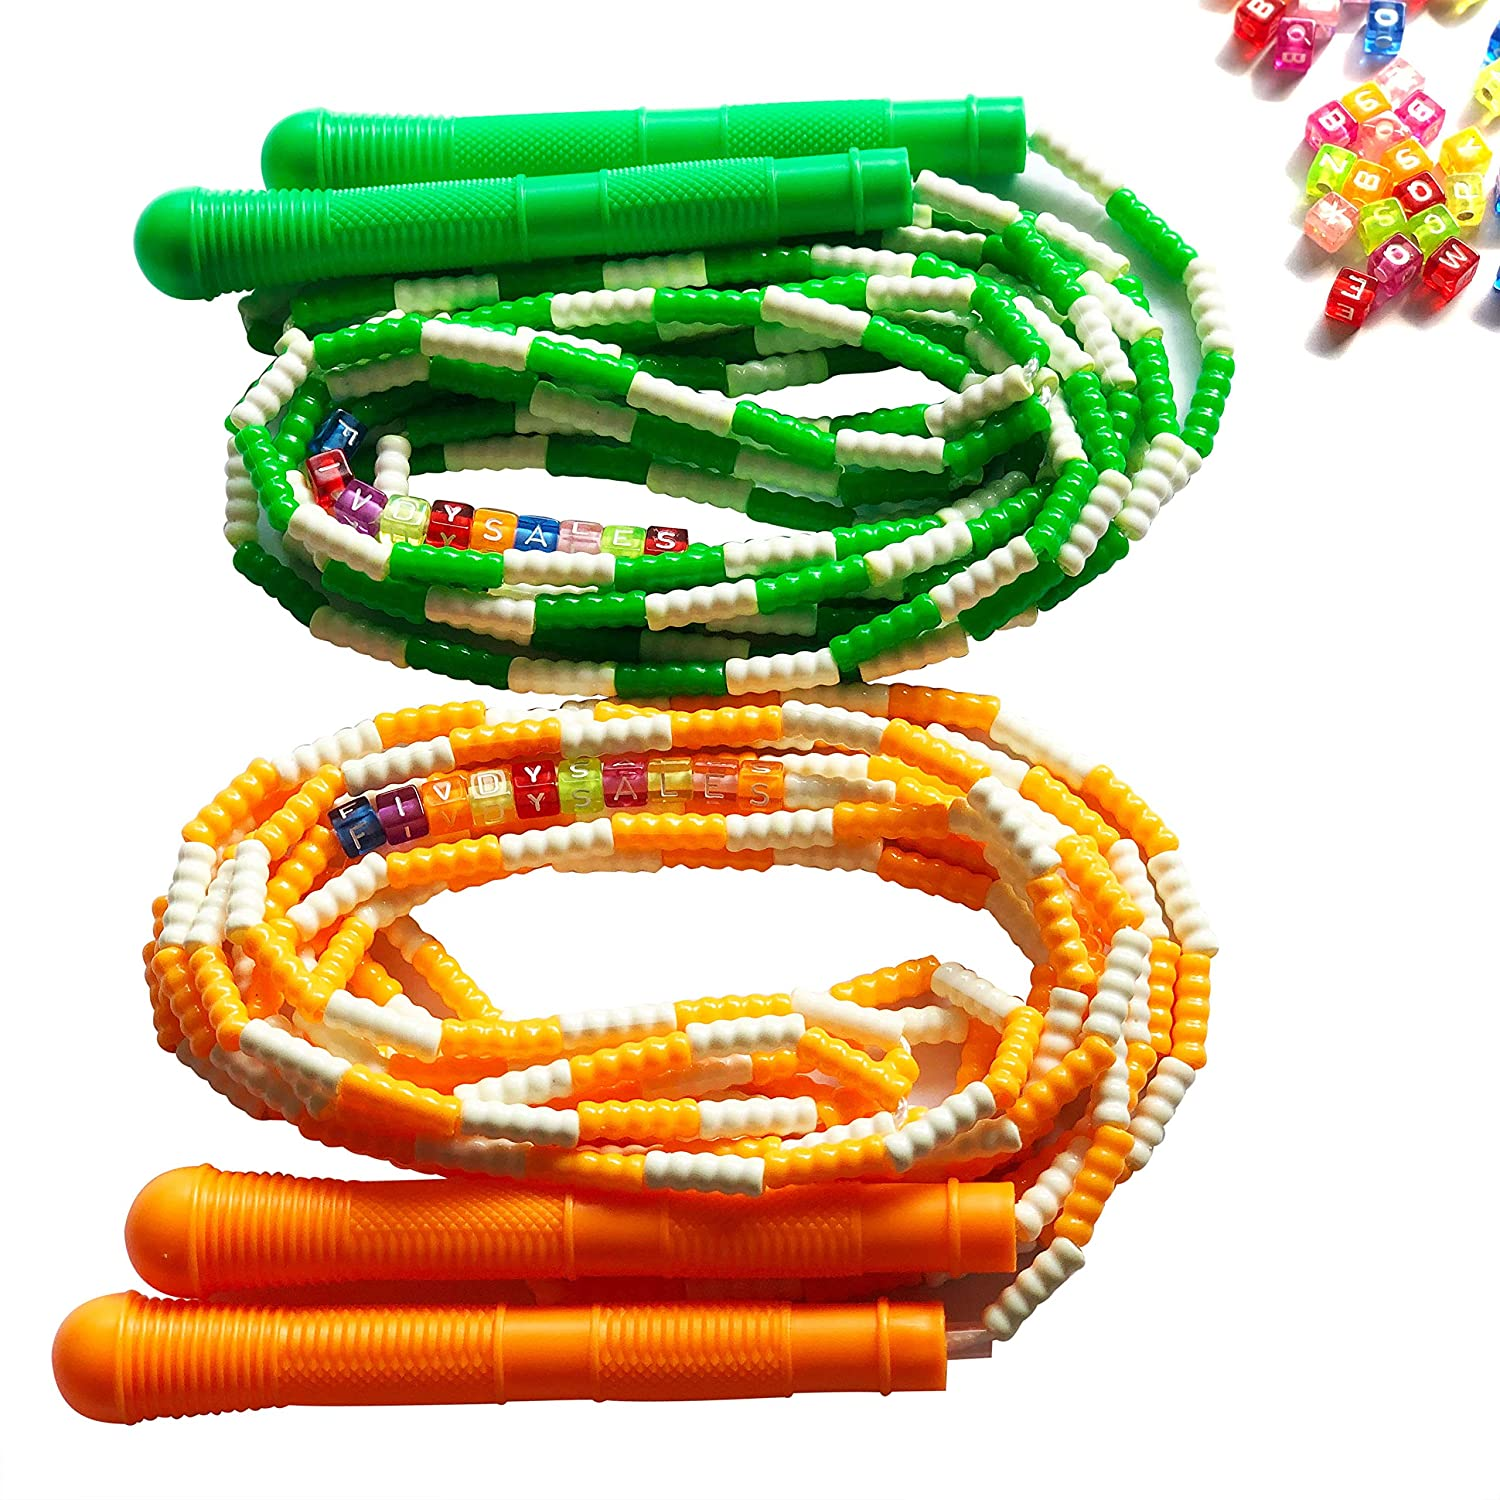 Personalized Name with 100 Colorful Letter Beads Double Dutch Jump Rope 16Ft 2 Pack Durable Soft Beaded Long Jump Rope Right Size and Weight for Double Dutch Prefect Gift for Birthday Christmas